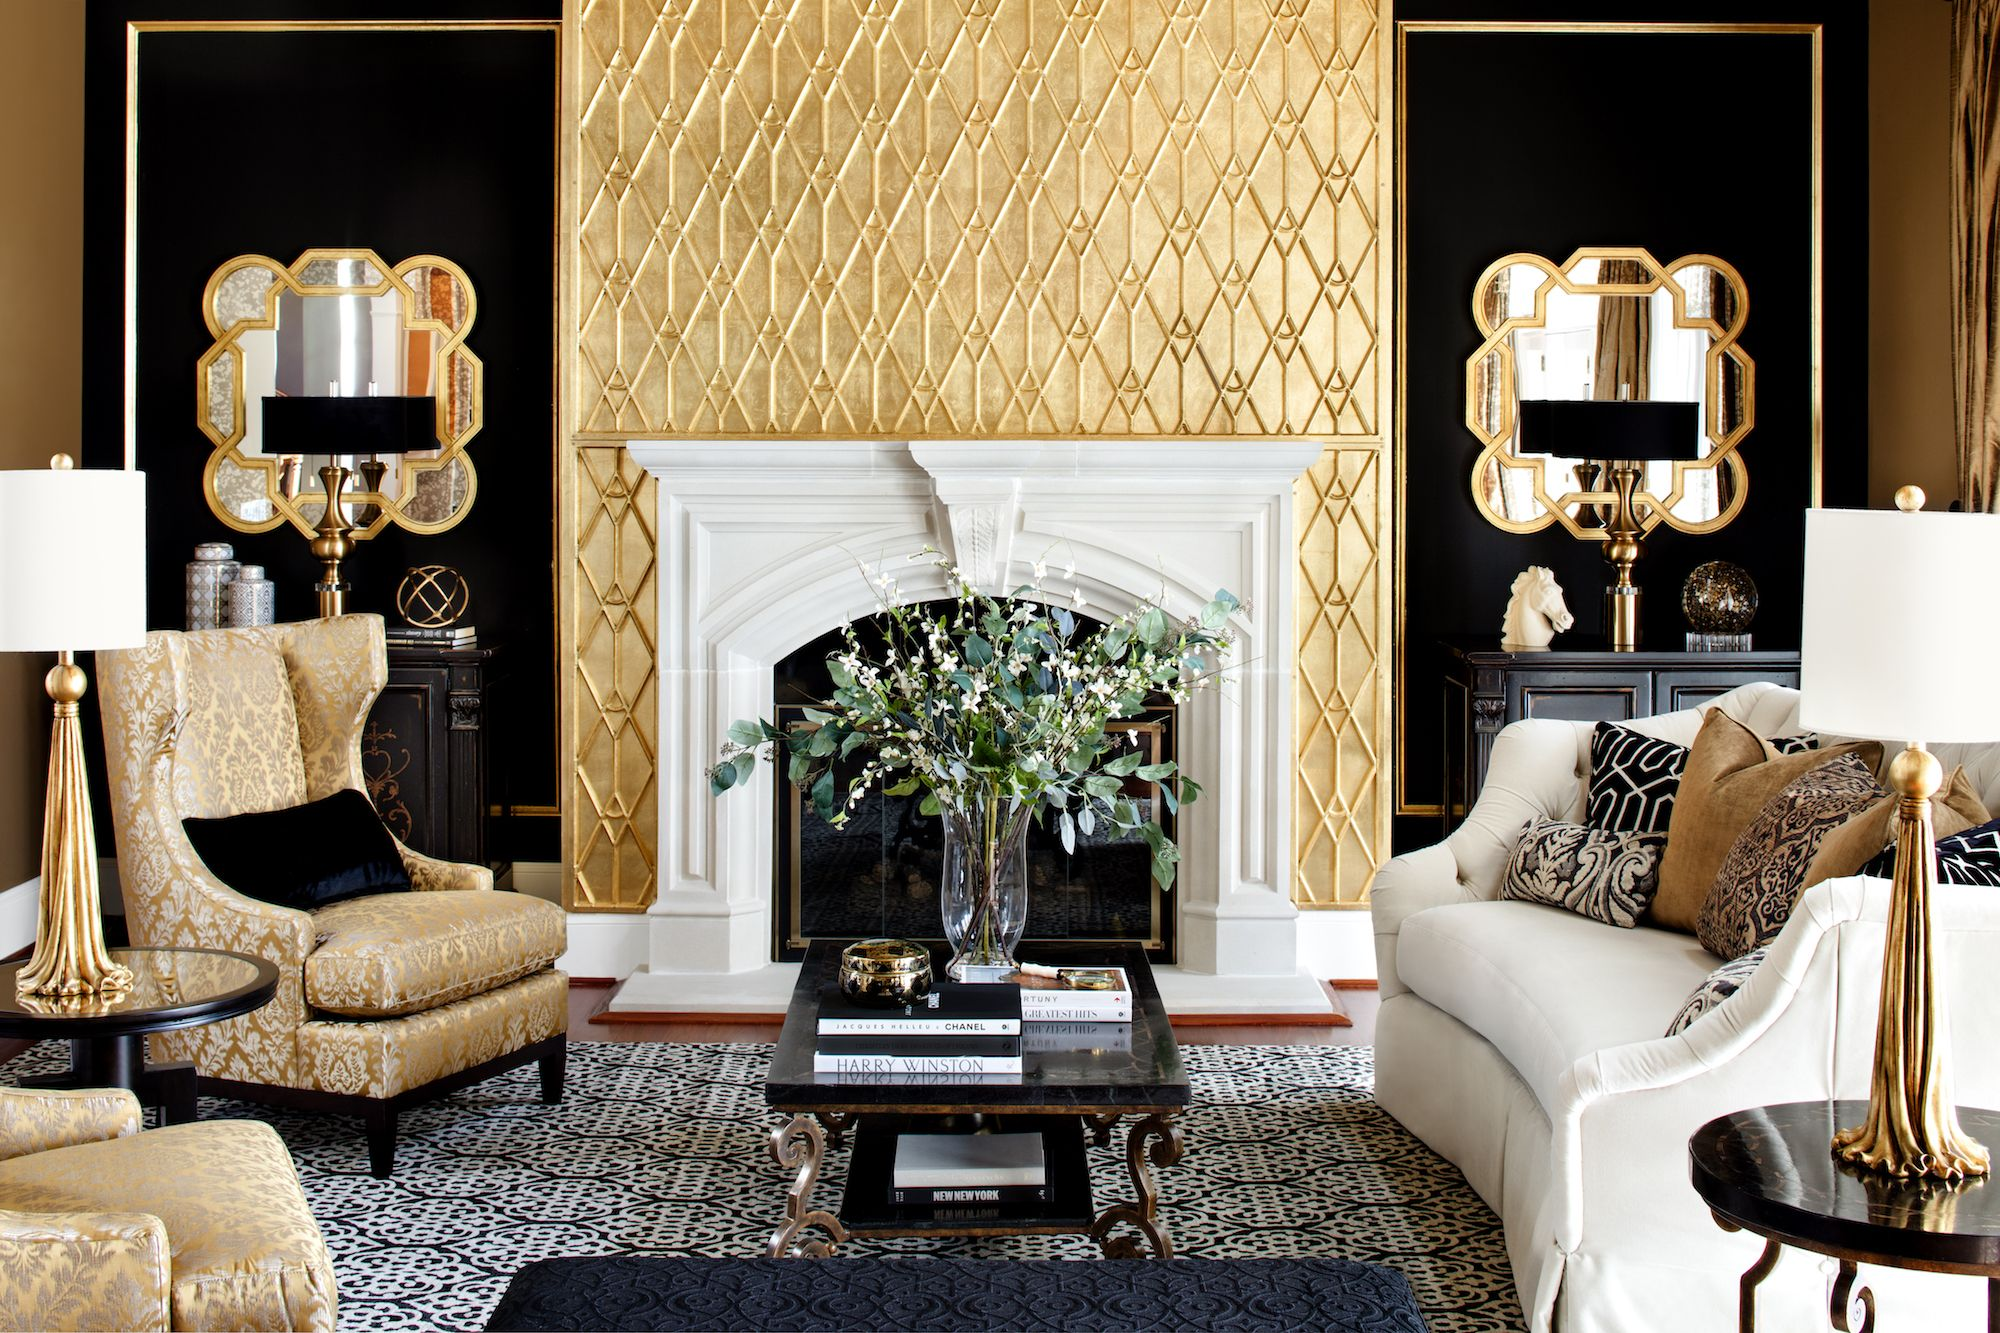 6 Reasons Hiring an Interior Designer Makes Your Life So Much Easier